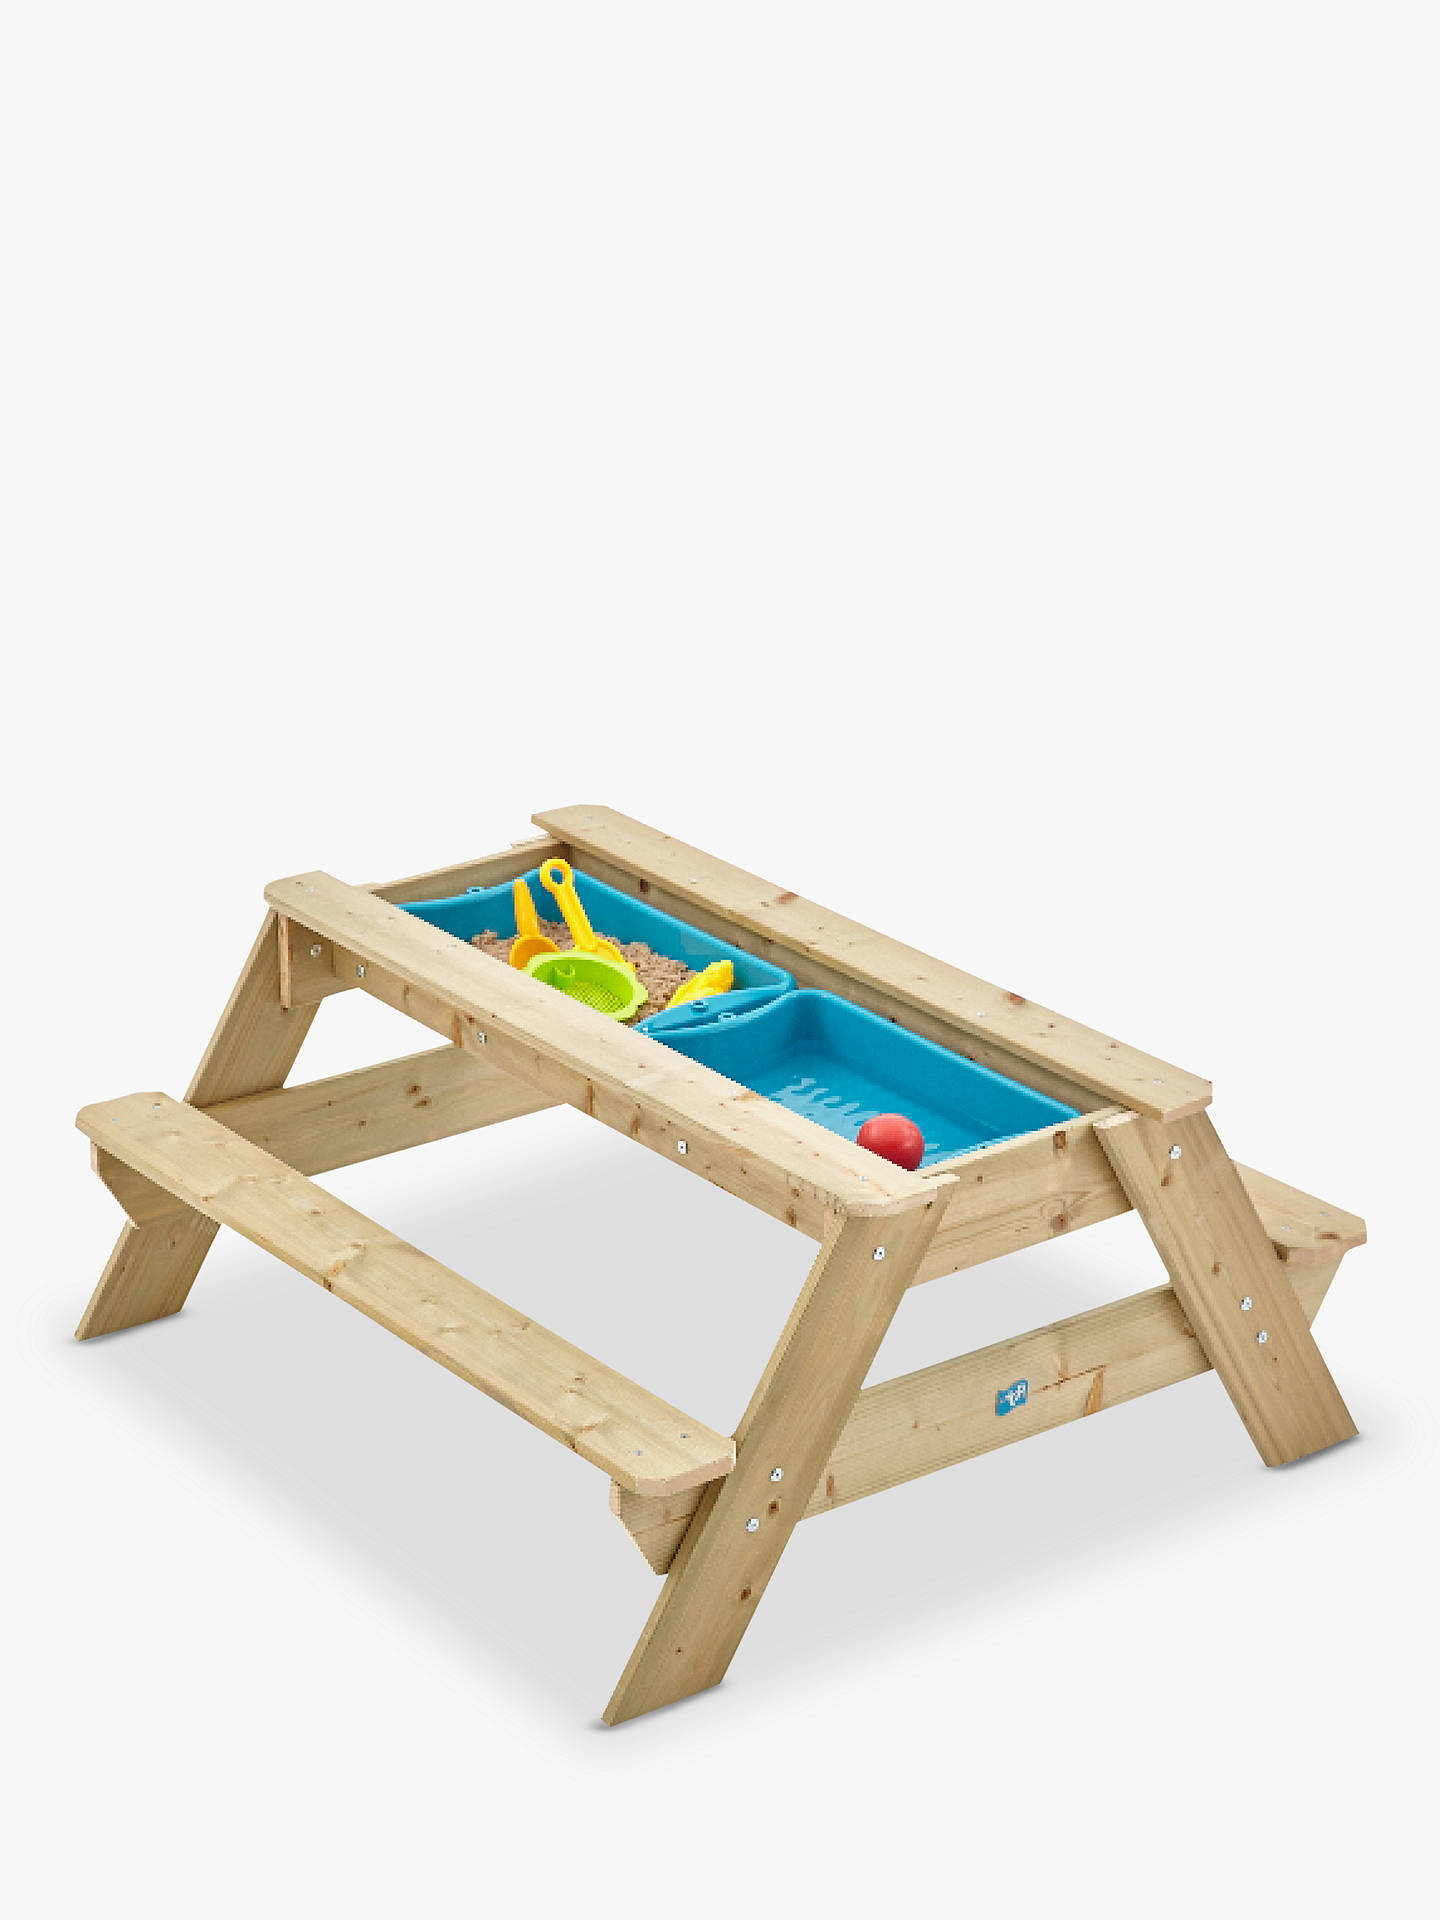 Sensational Tp Toys Tp286 Deluxe Picnic Table Sandpit Pabps2019 Chair Design Images Pabps2019Com